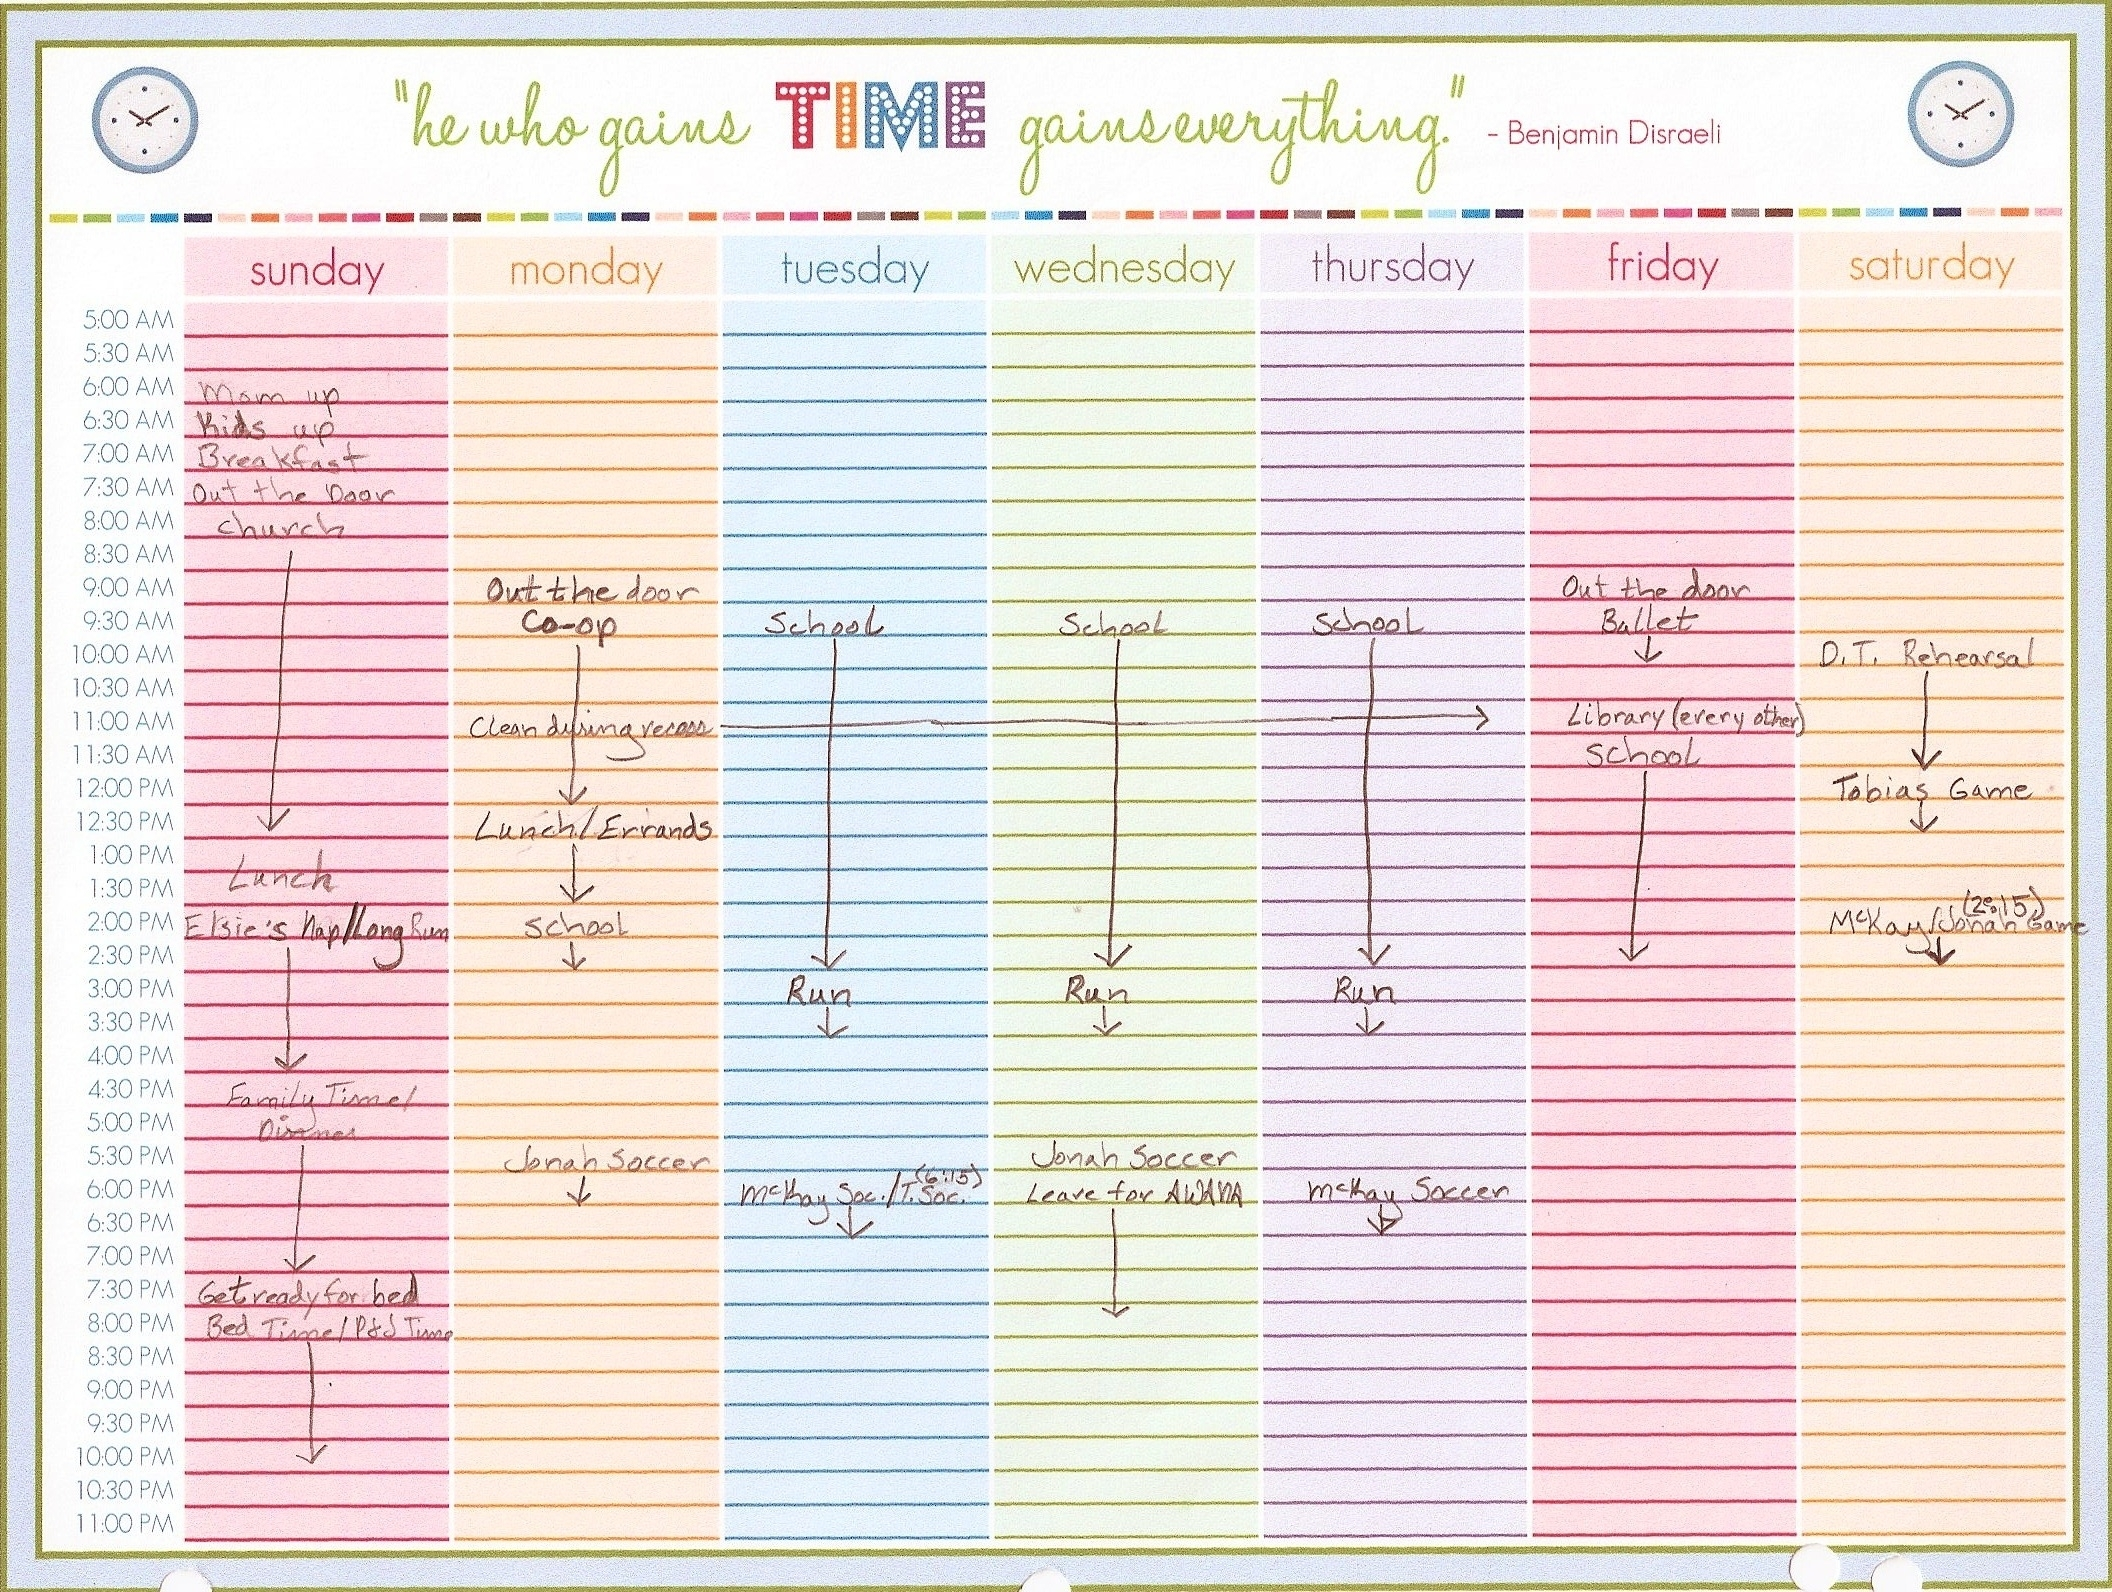 25 Images Of Weekly Calendar With Time Slots Template | Helmettown within Blank Weekly Schedule With Time Slots